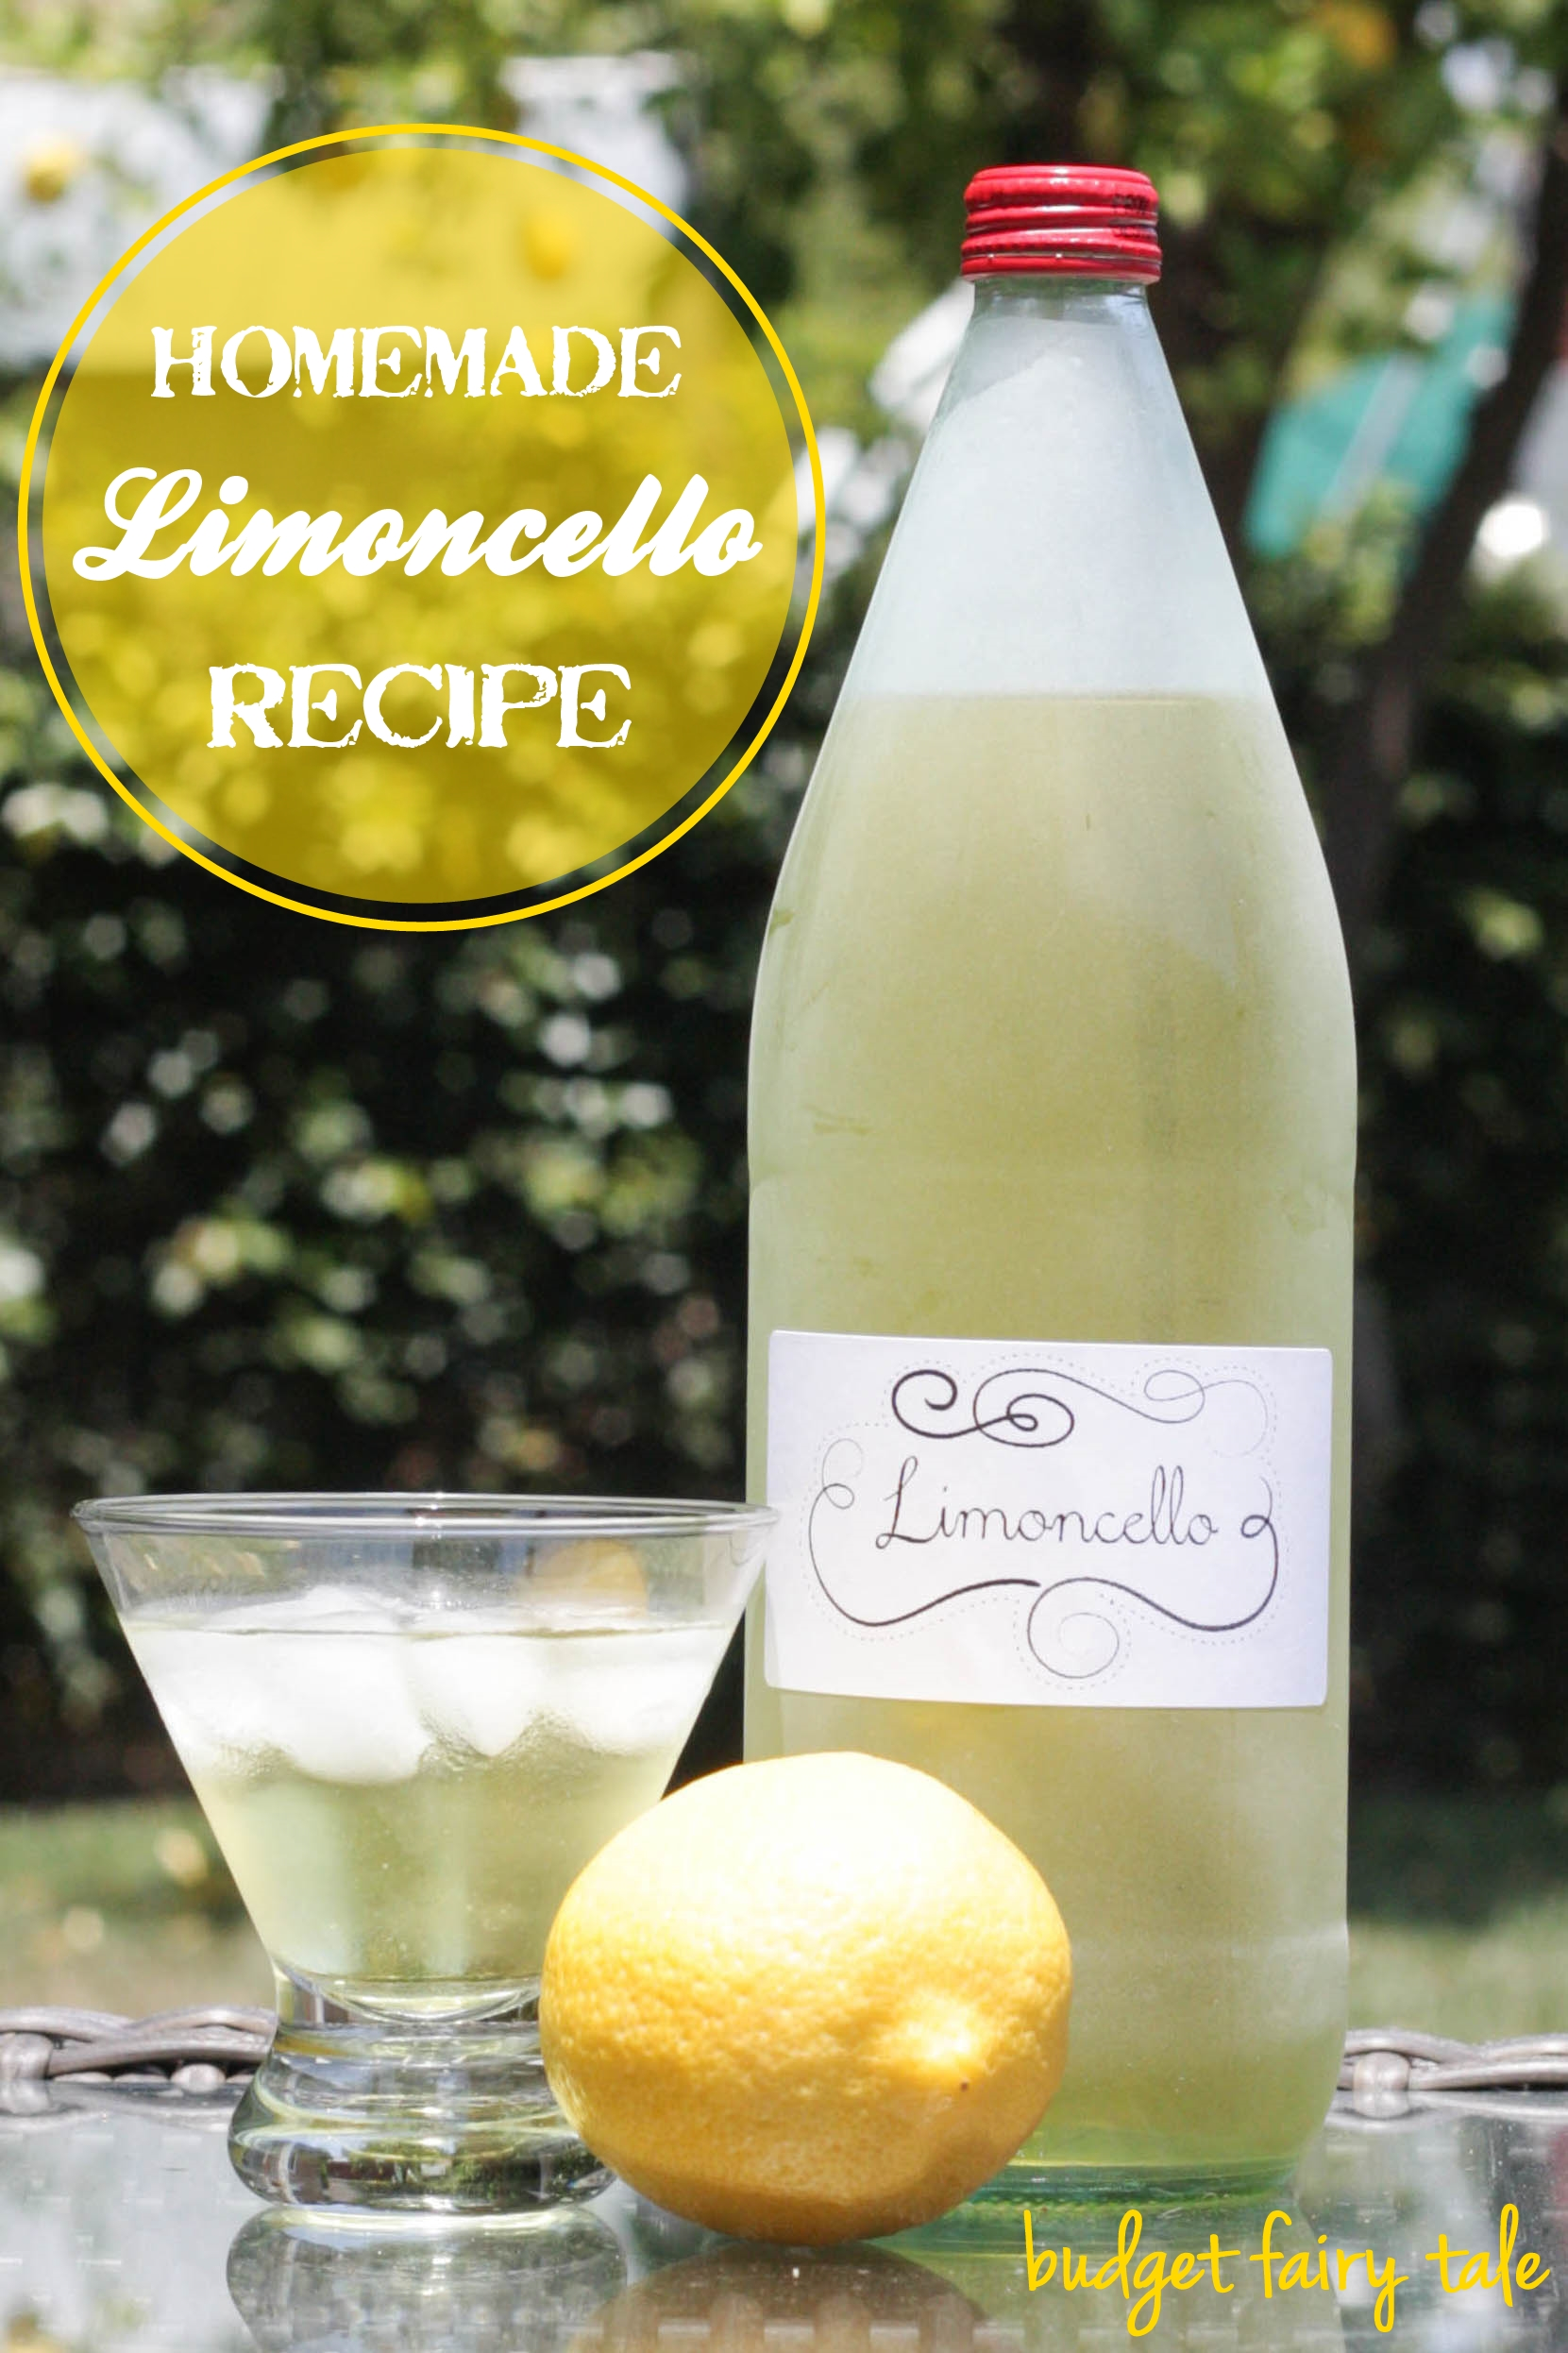 Homemade Limoncello Recipe